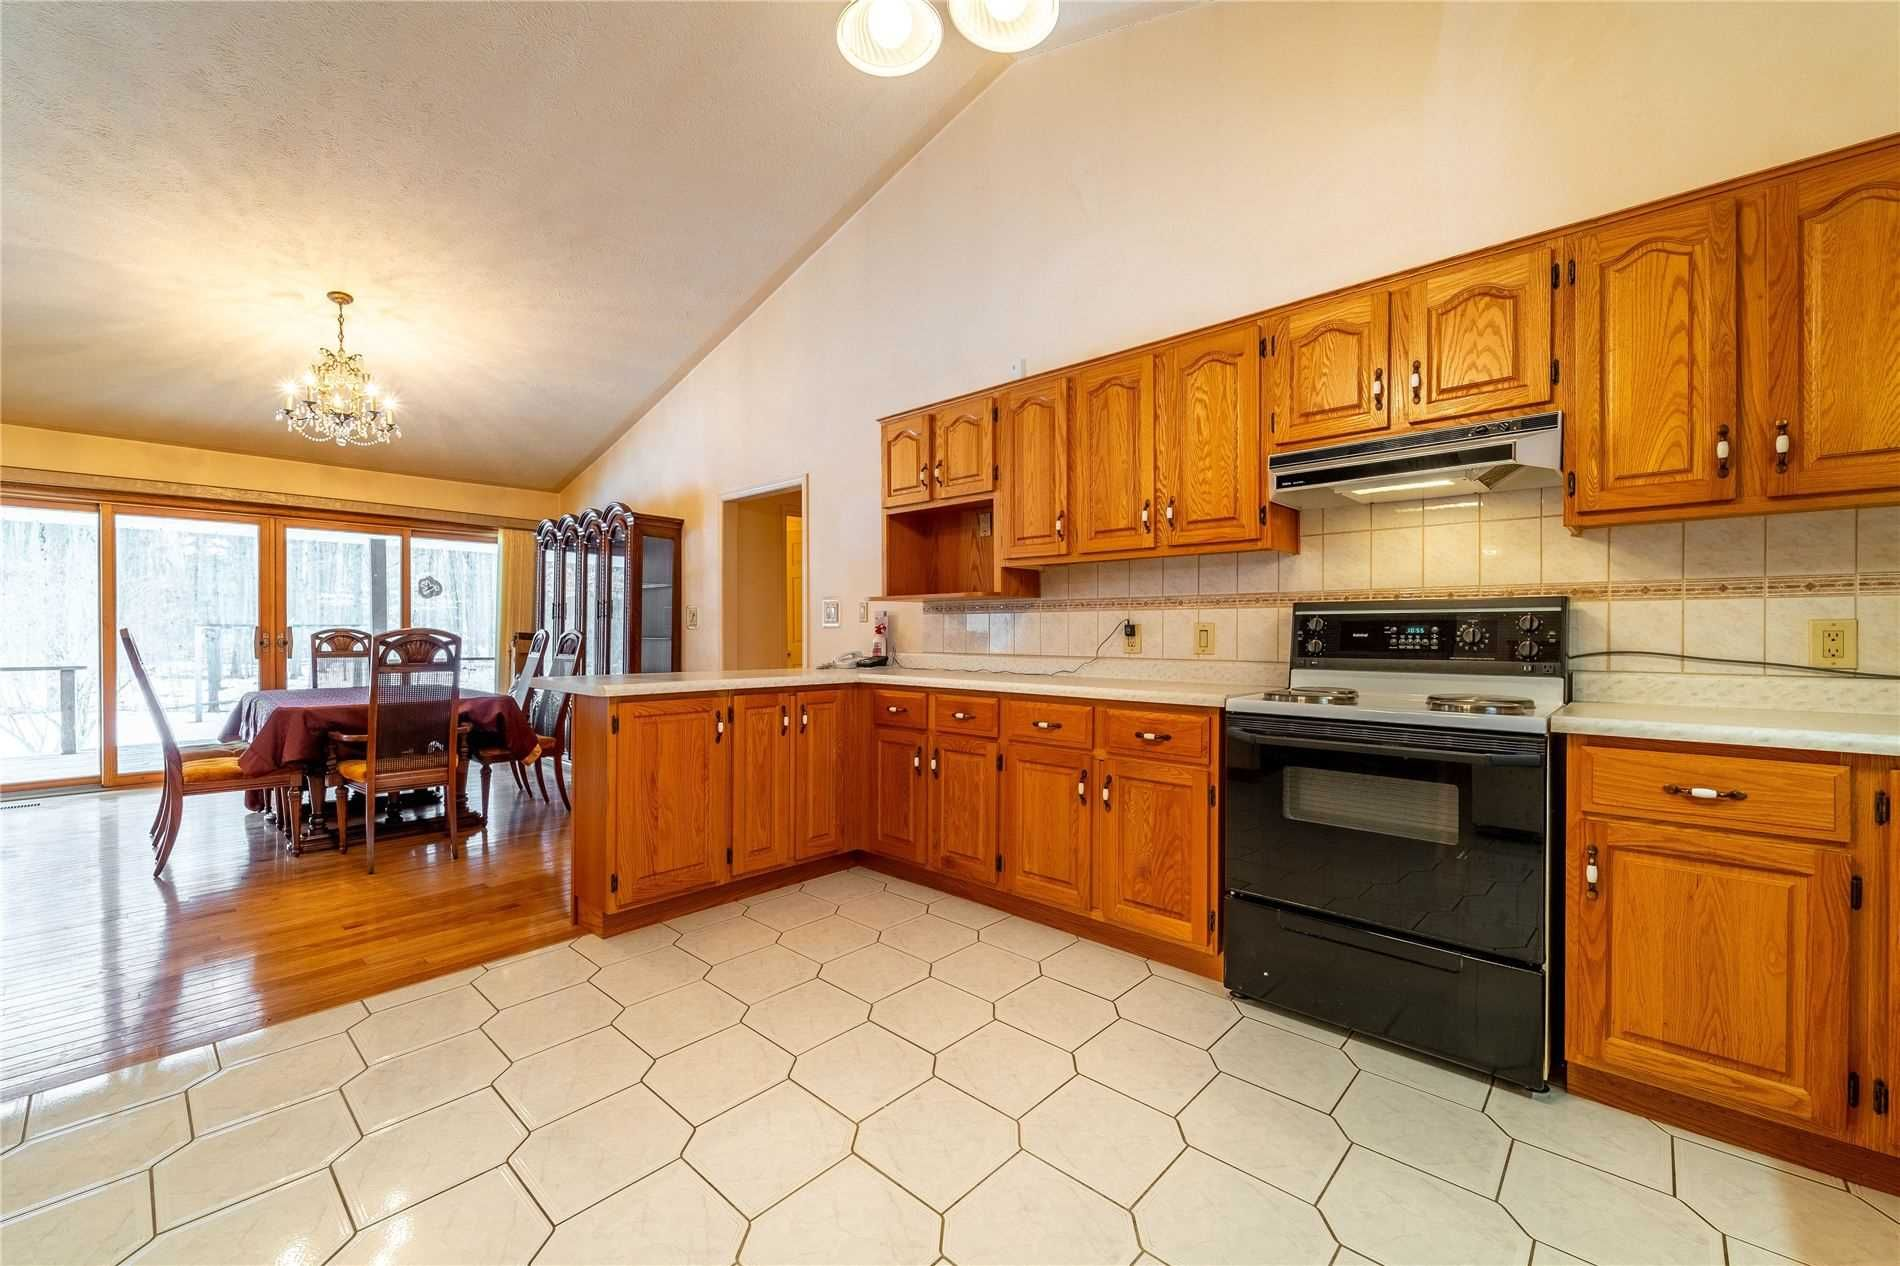 Photo 10: Photos: 918 Windham12 Road in Norfolk: Simcoe House (Bungalow) for sale : MLS®# X4707719